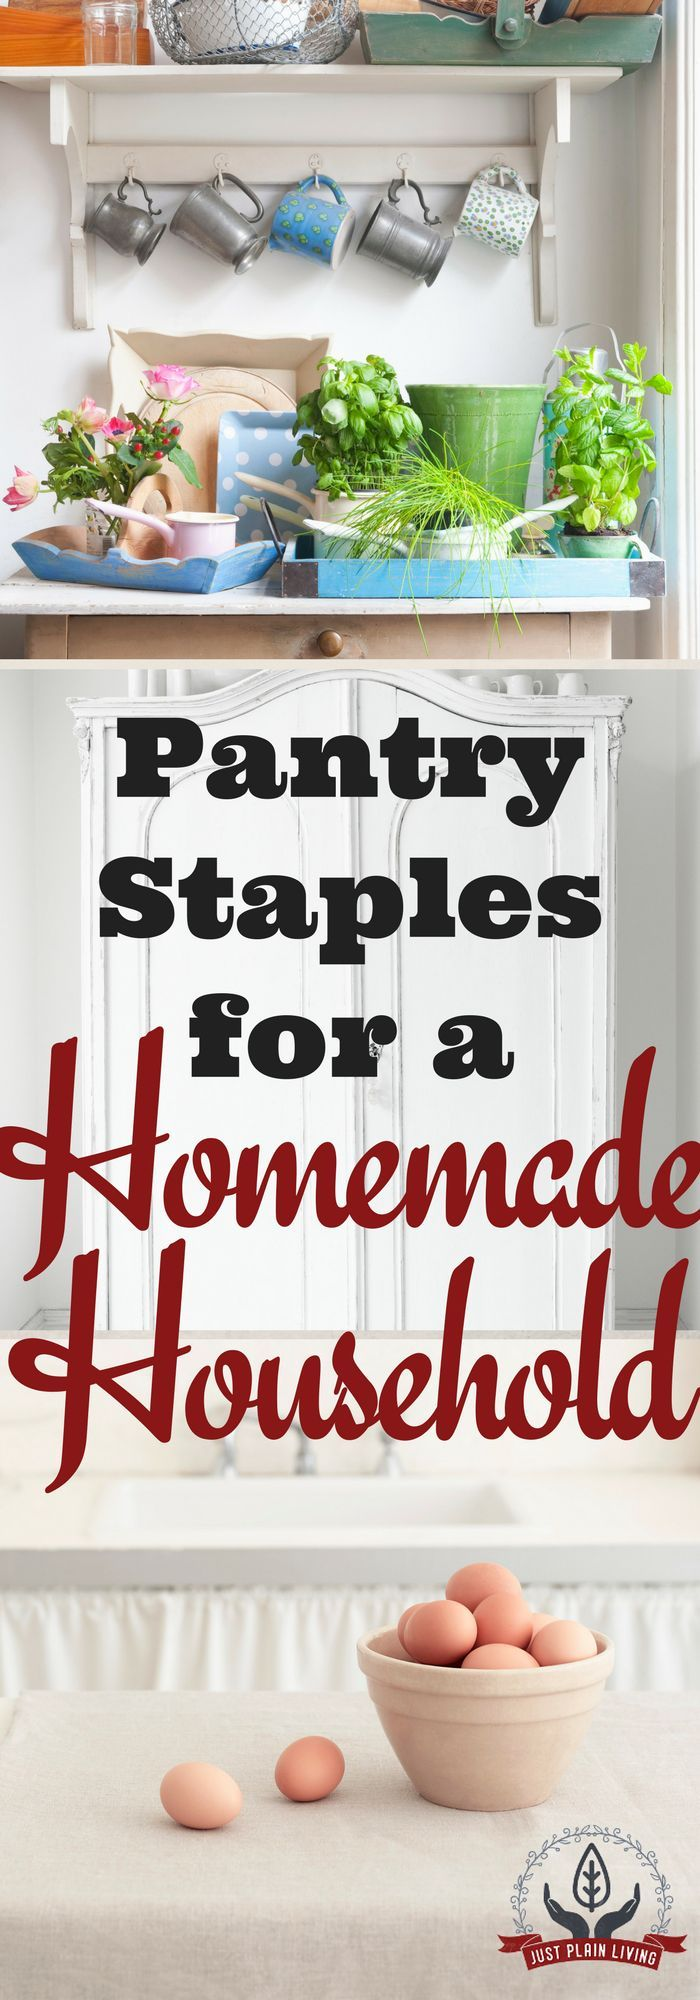 Save time and save money by having a pantry with the foods that you need to make meals from scratch.